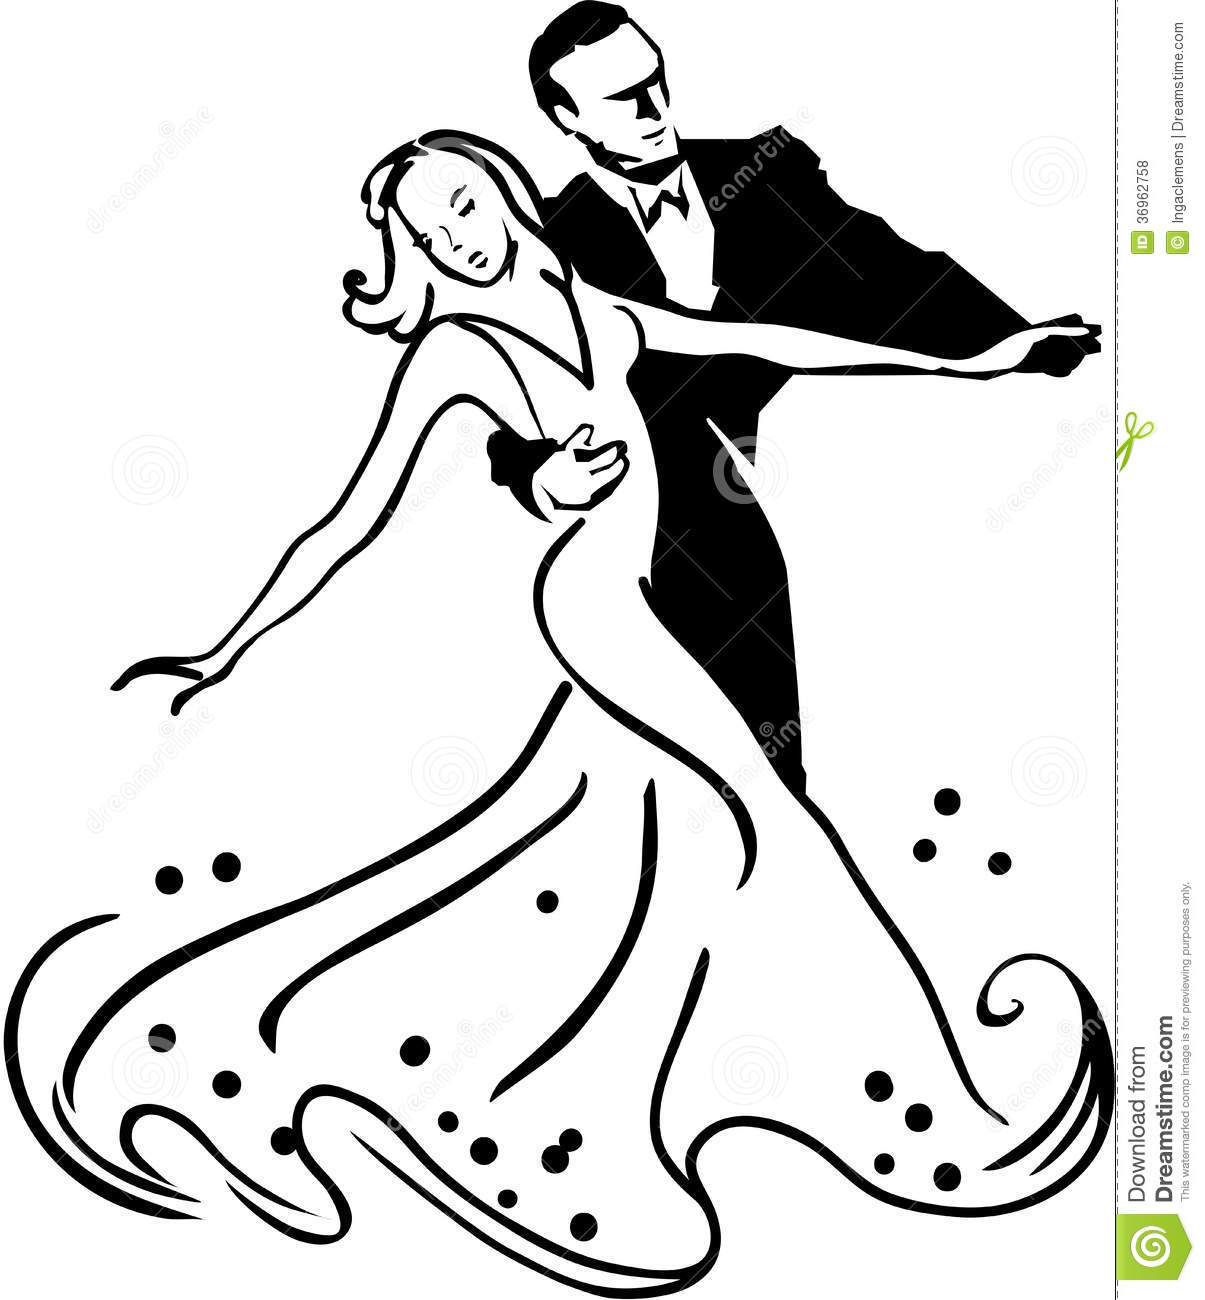 Dance Steps Diagram besides Dance Edition Part 3 furthermore Waltz further Rotation Foxtrot in addition How to Waltz. on waltz steps